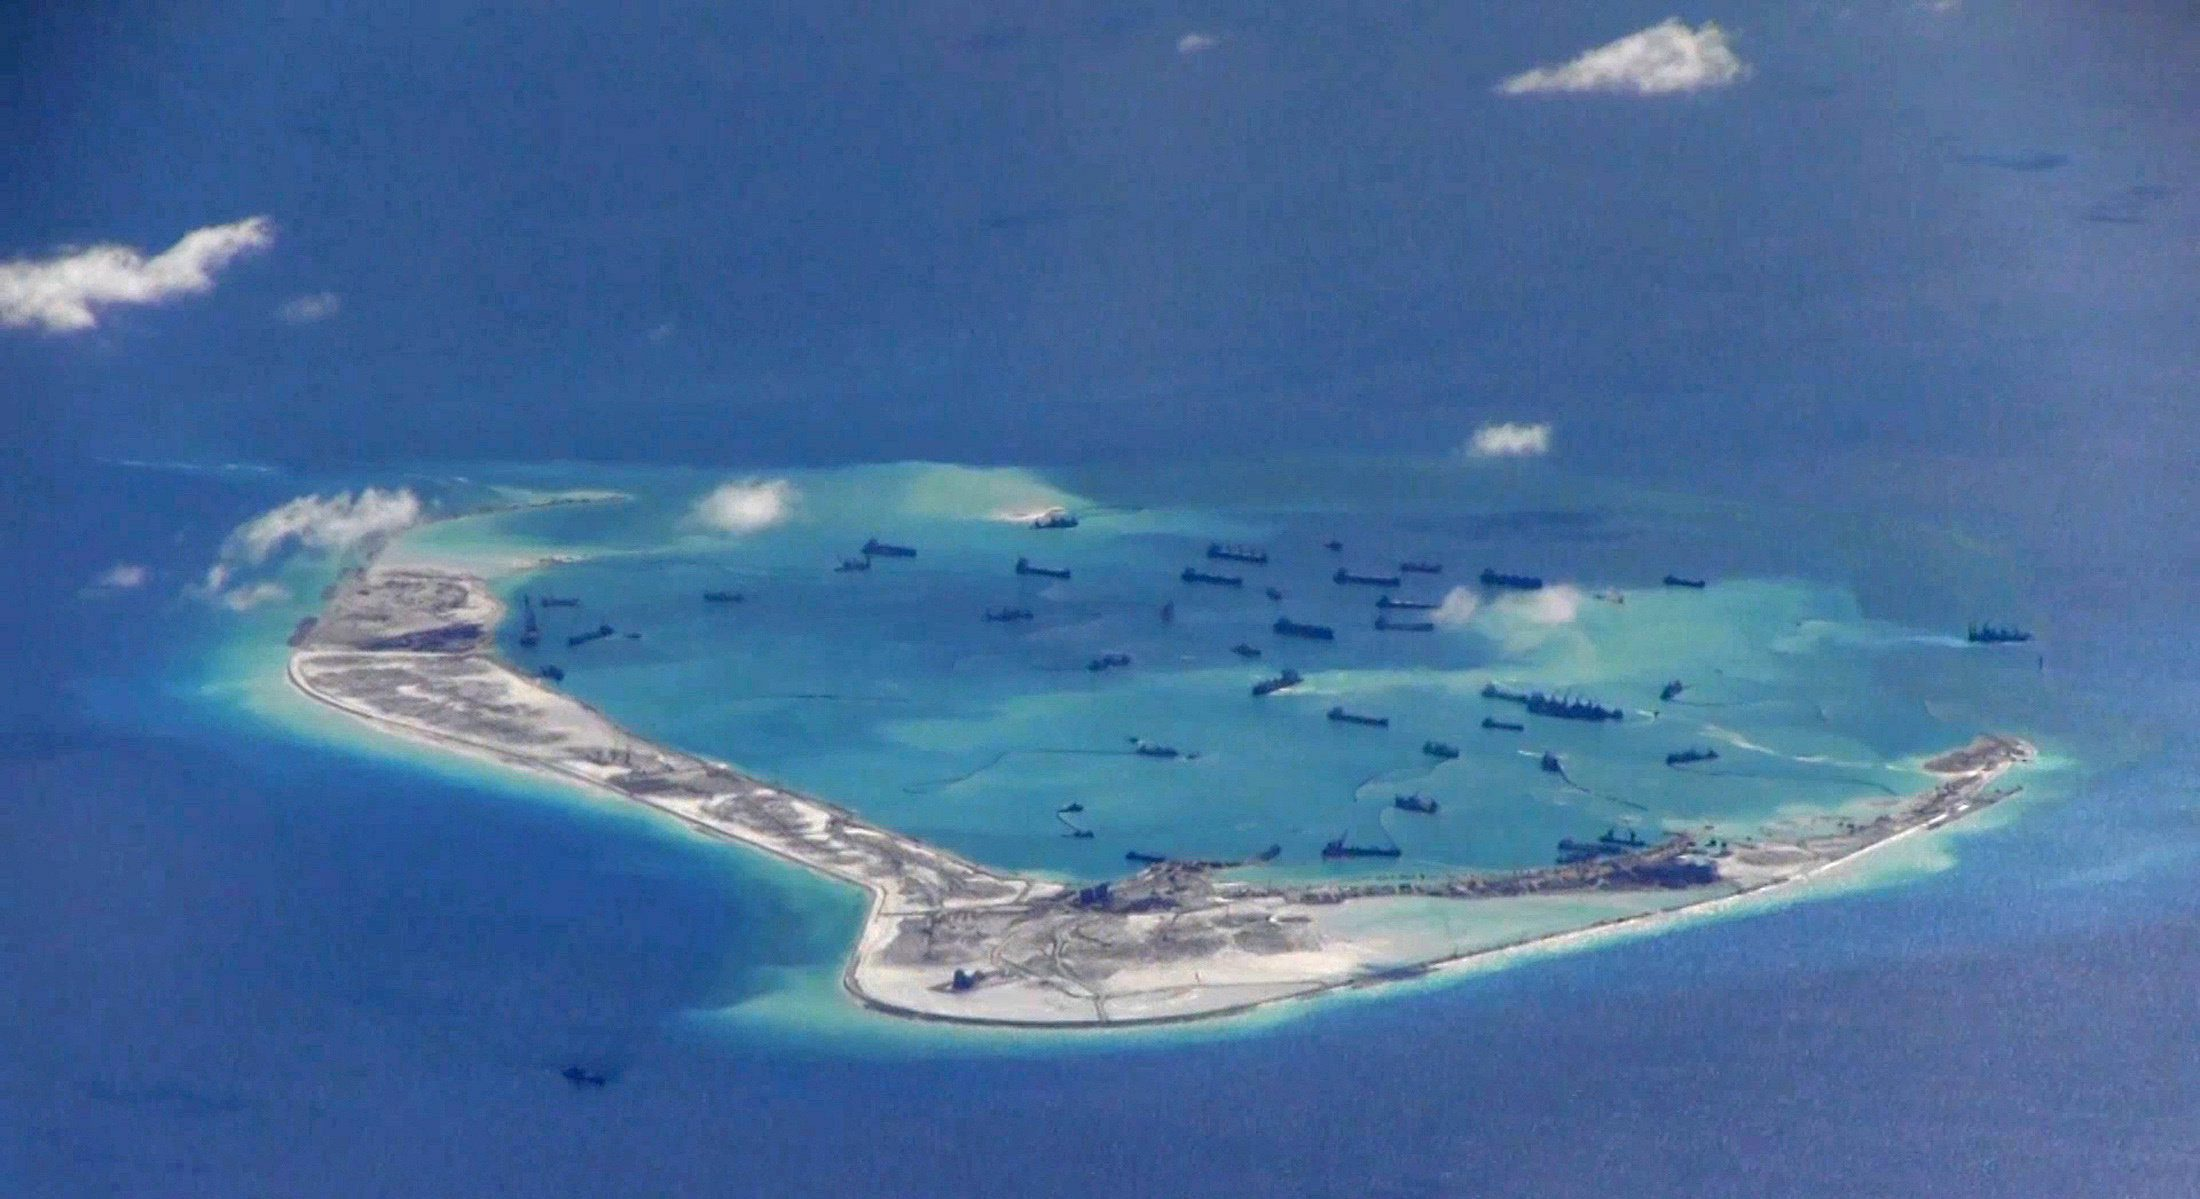 Mischief Reef in the South China Sea, with dredging ships.